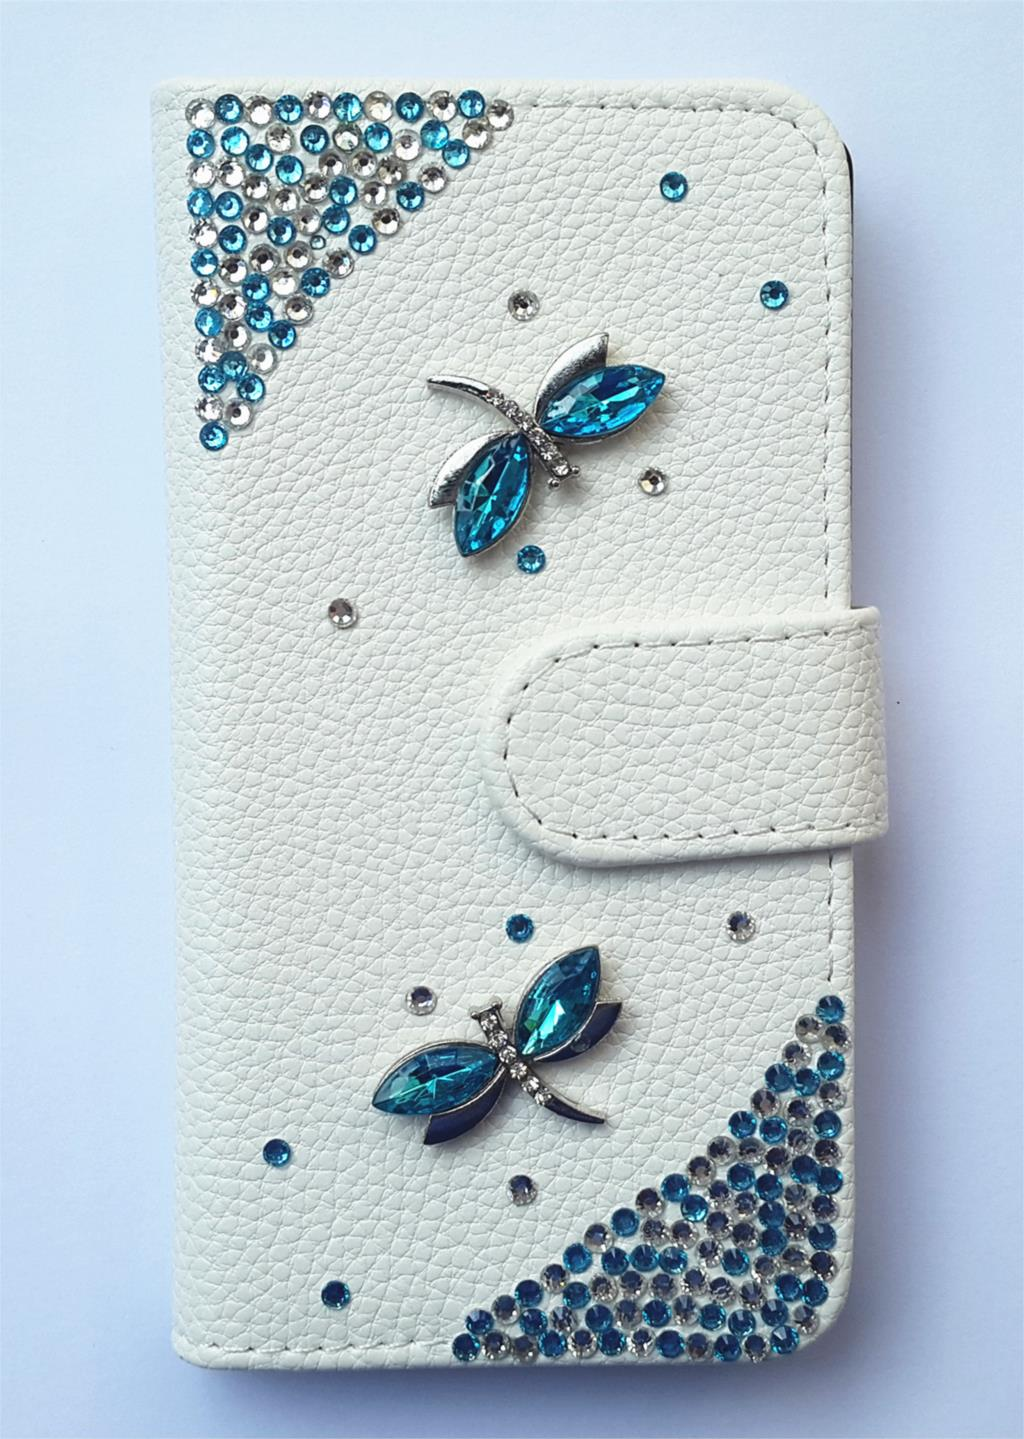 Crystal Dragonfly Wallet Card Holder PU Leather Flip Case Cover for Sony Ericsson XPERIA X10 X10i(China (Mainland))